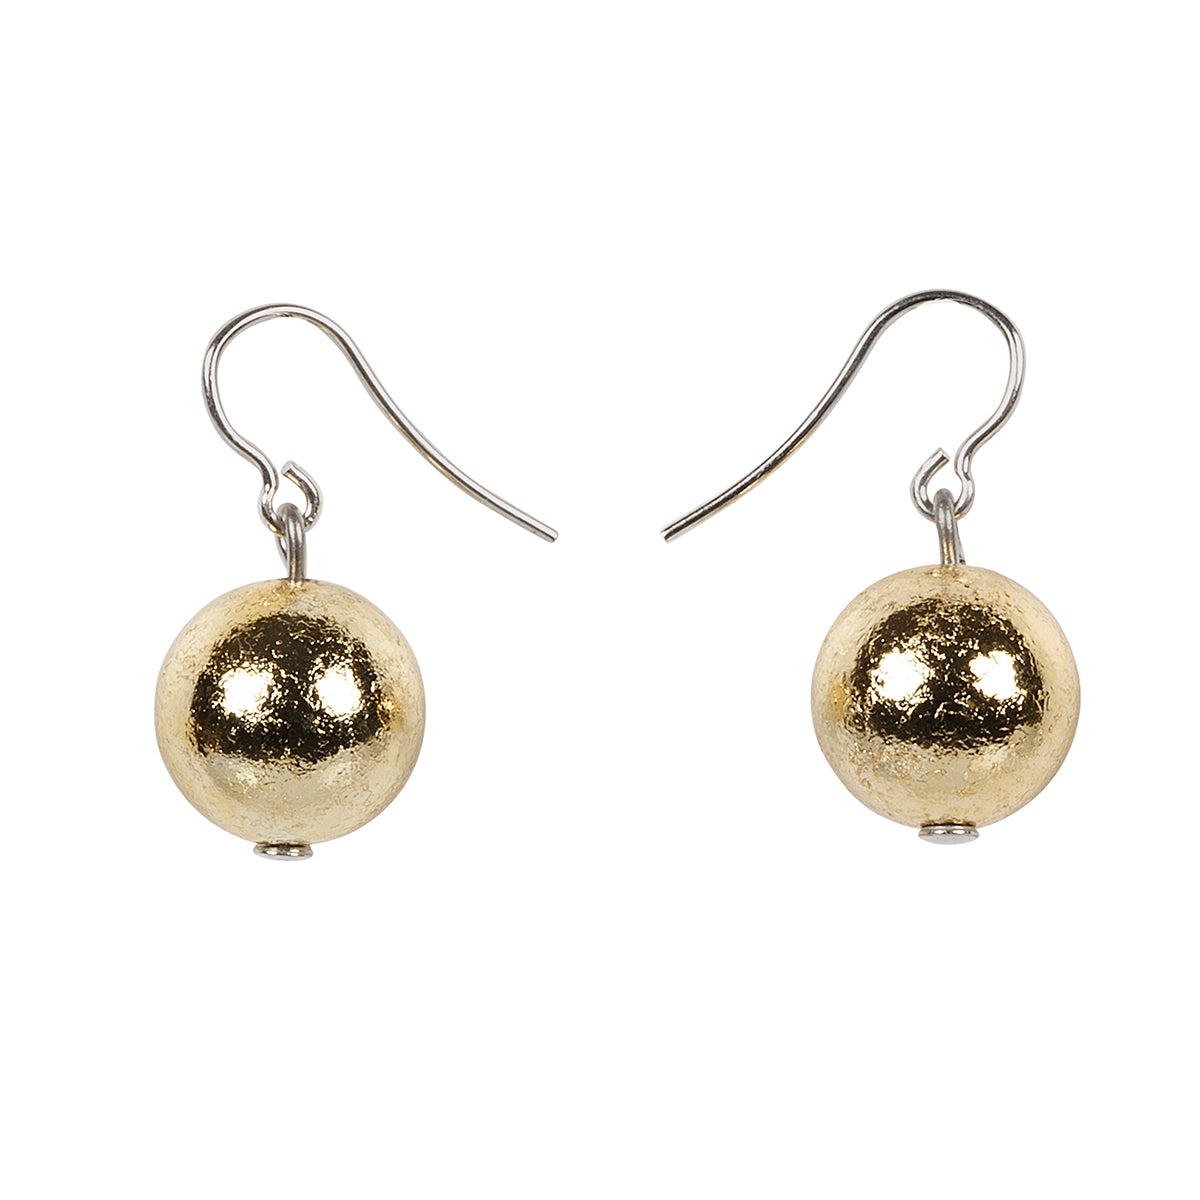 Karpalo earrings